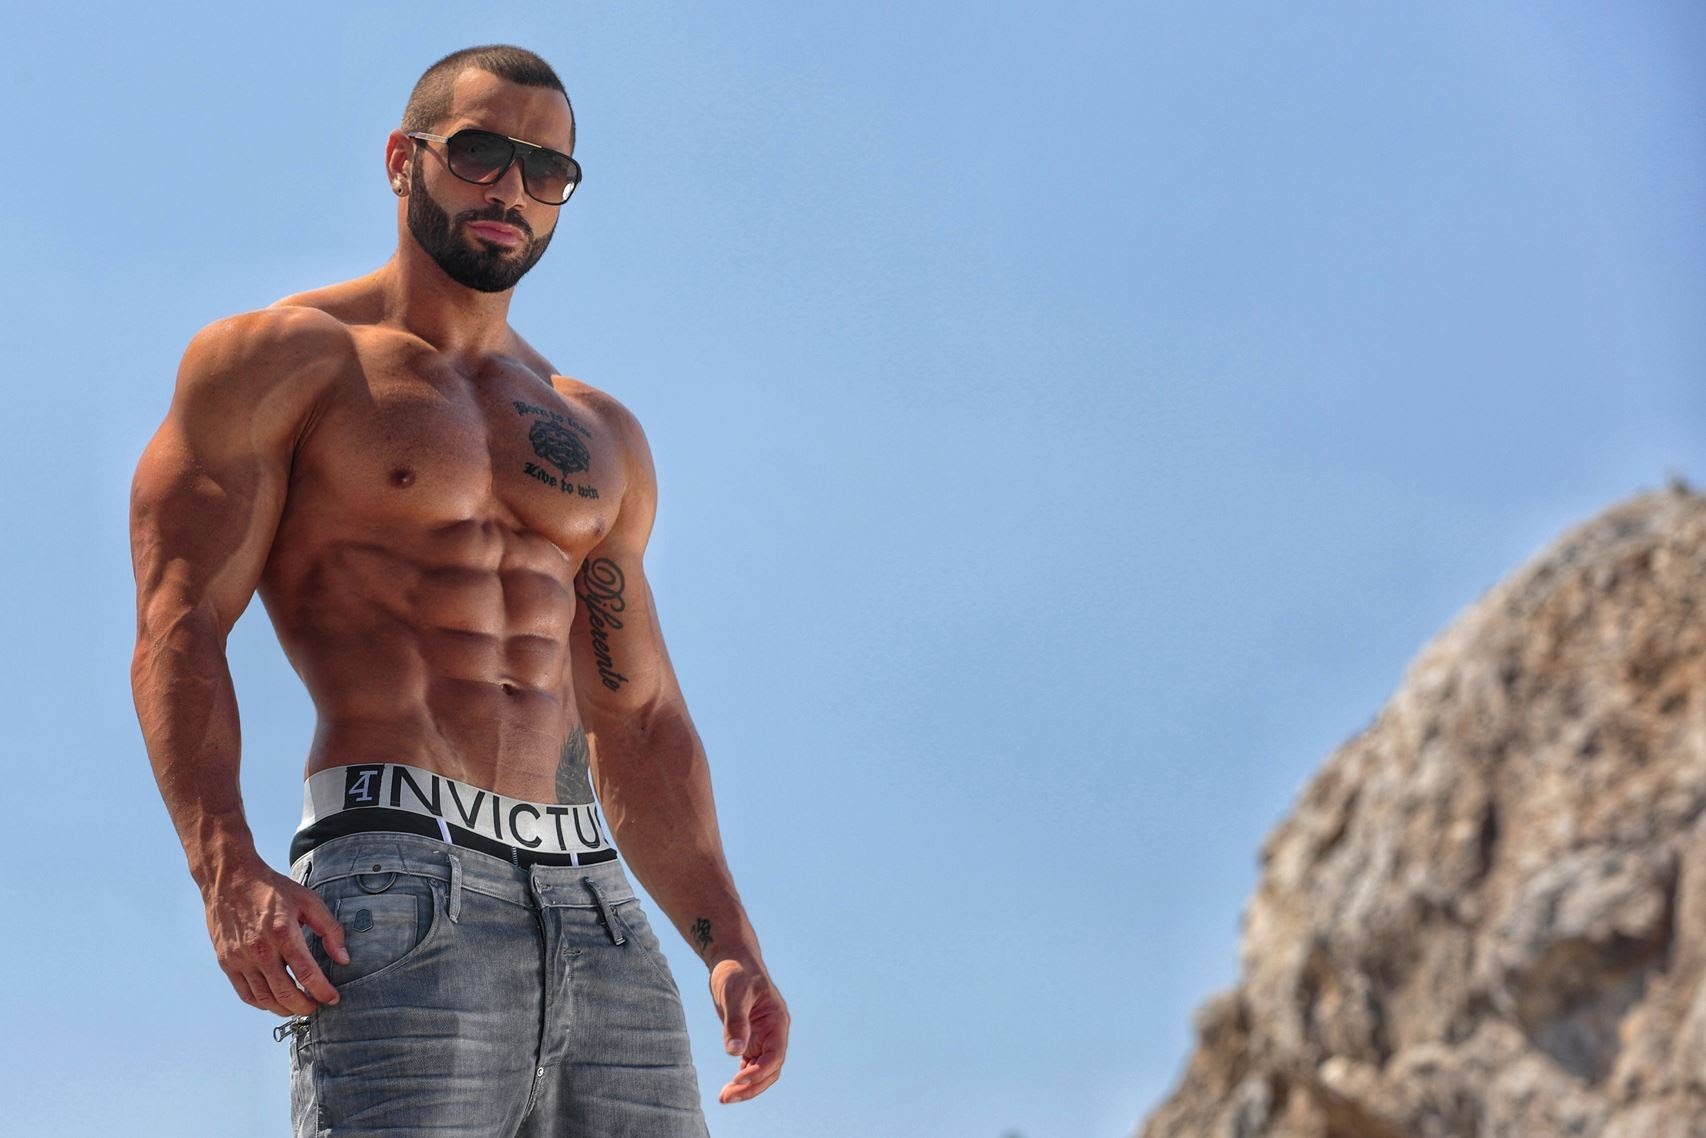 Fitness model: Lazar Angelov